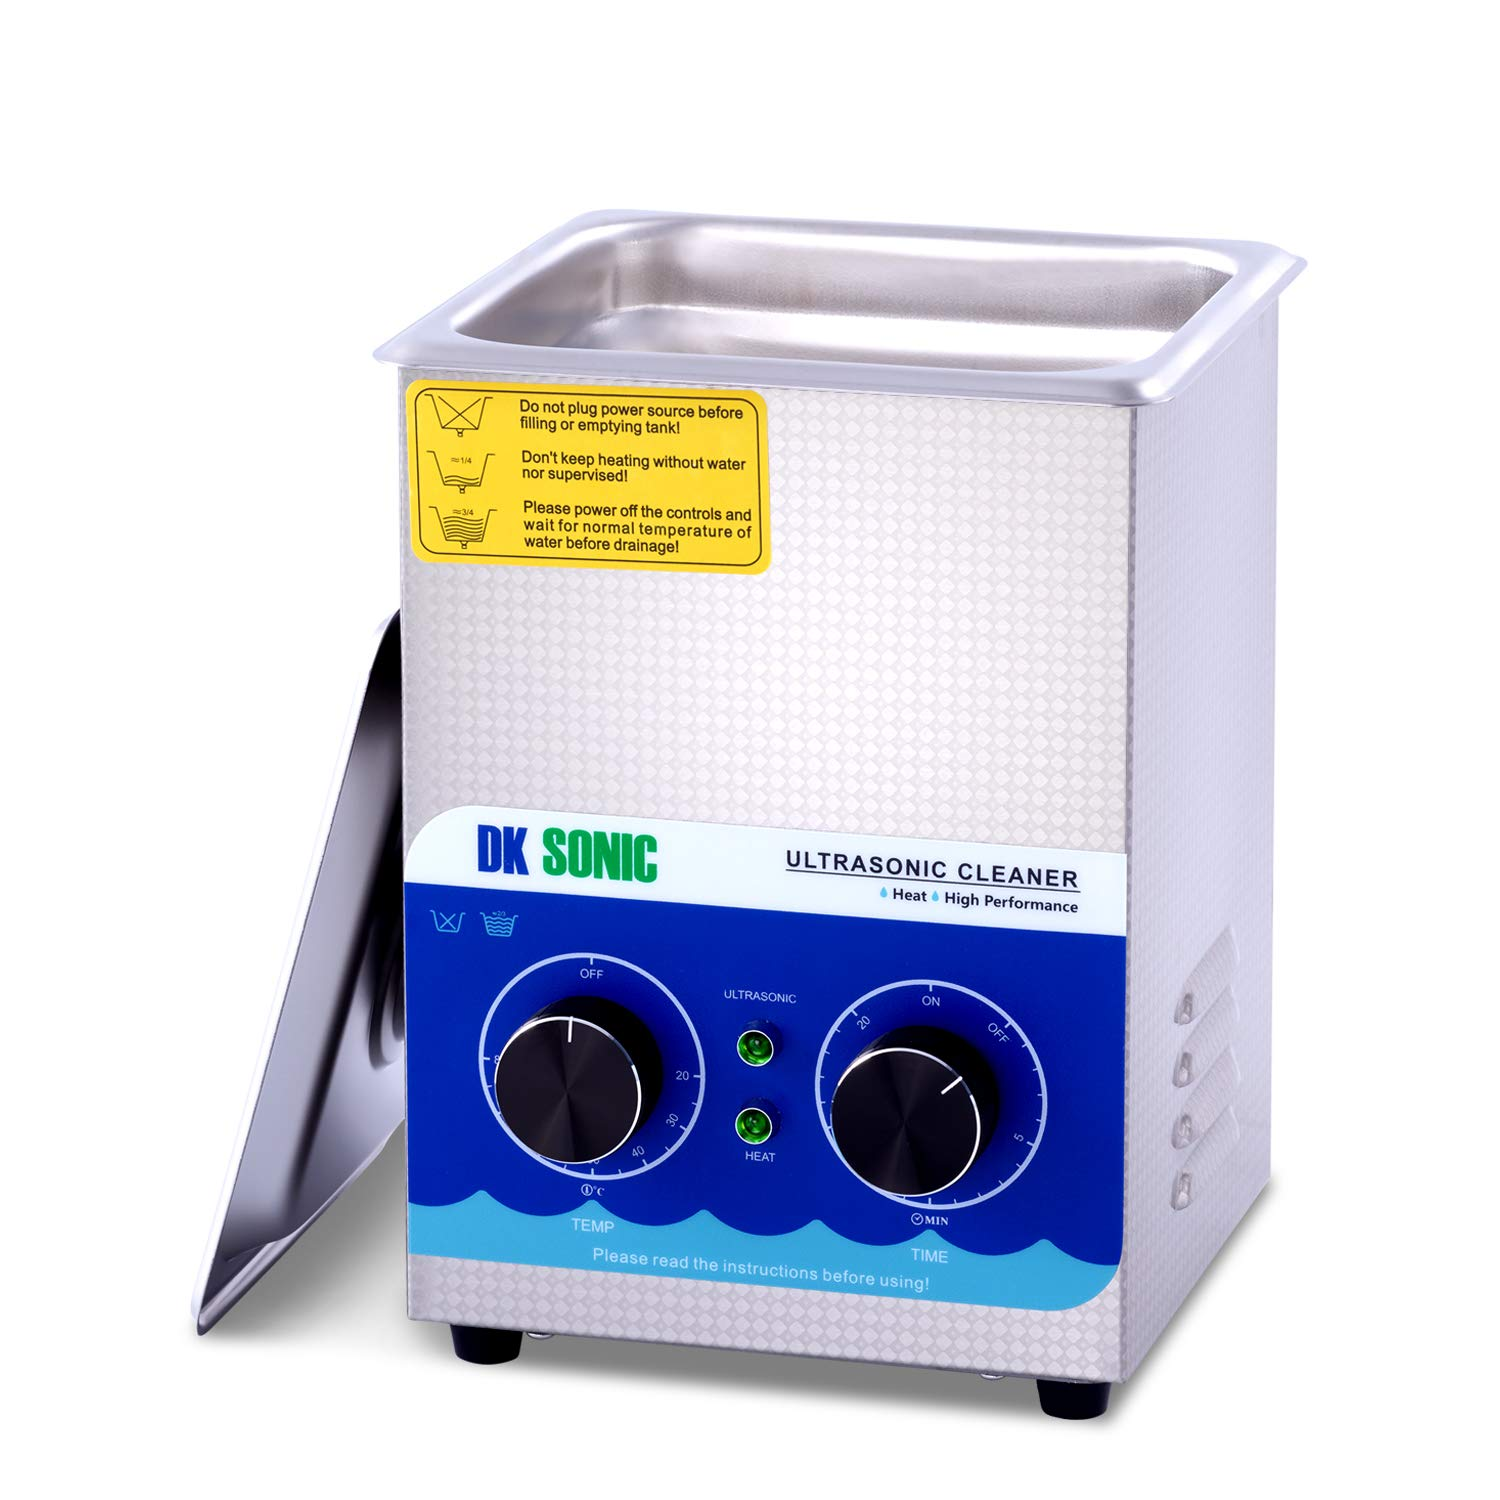 Commercial Ultrasonic Cleaner-DK SONIC 2L 60W Sonic Cleaner with Heater|Basket for Jewelry,Ring,Eyeglasses,Denture,Watchband,Coins,Small Metal Parts,Circuit Board etc